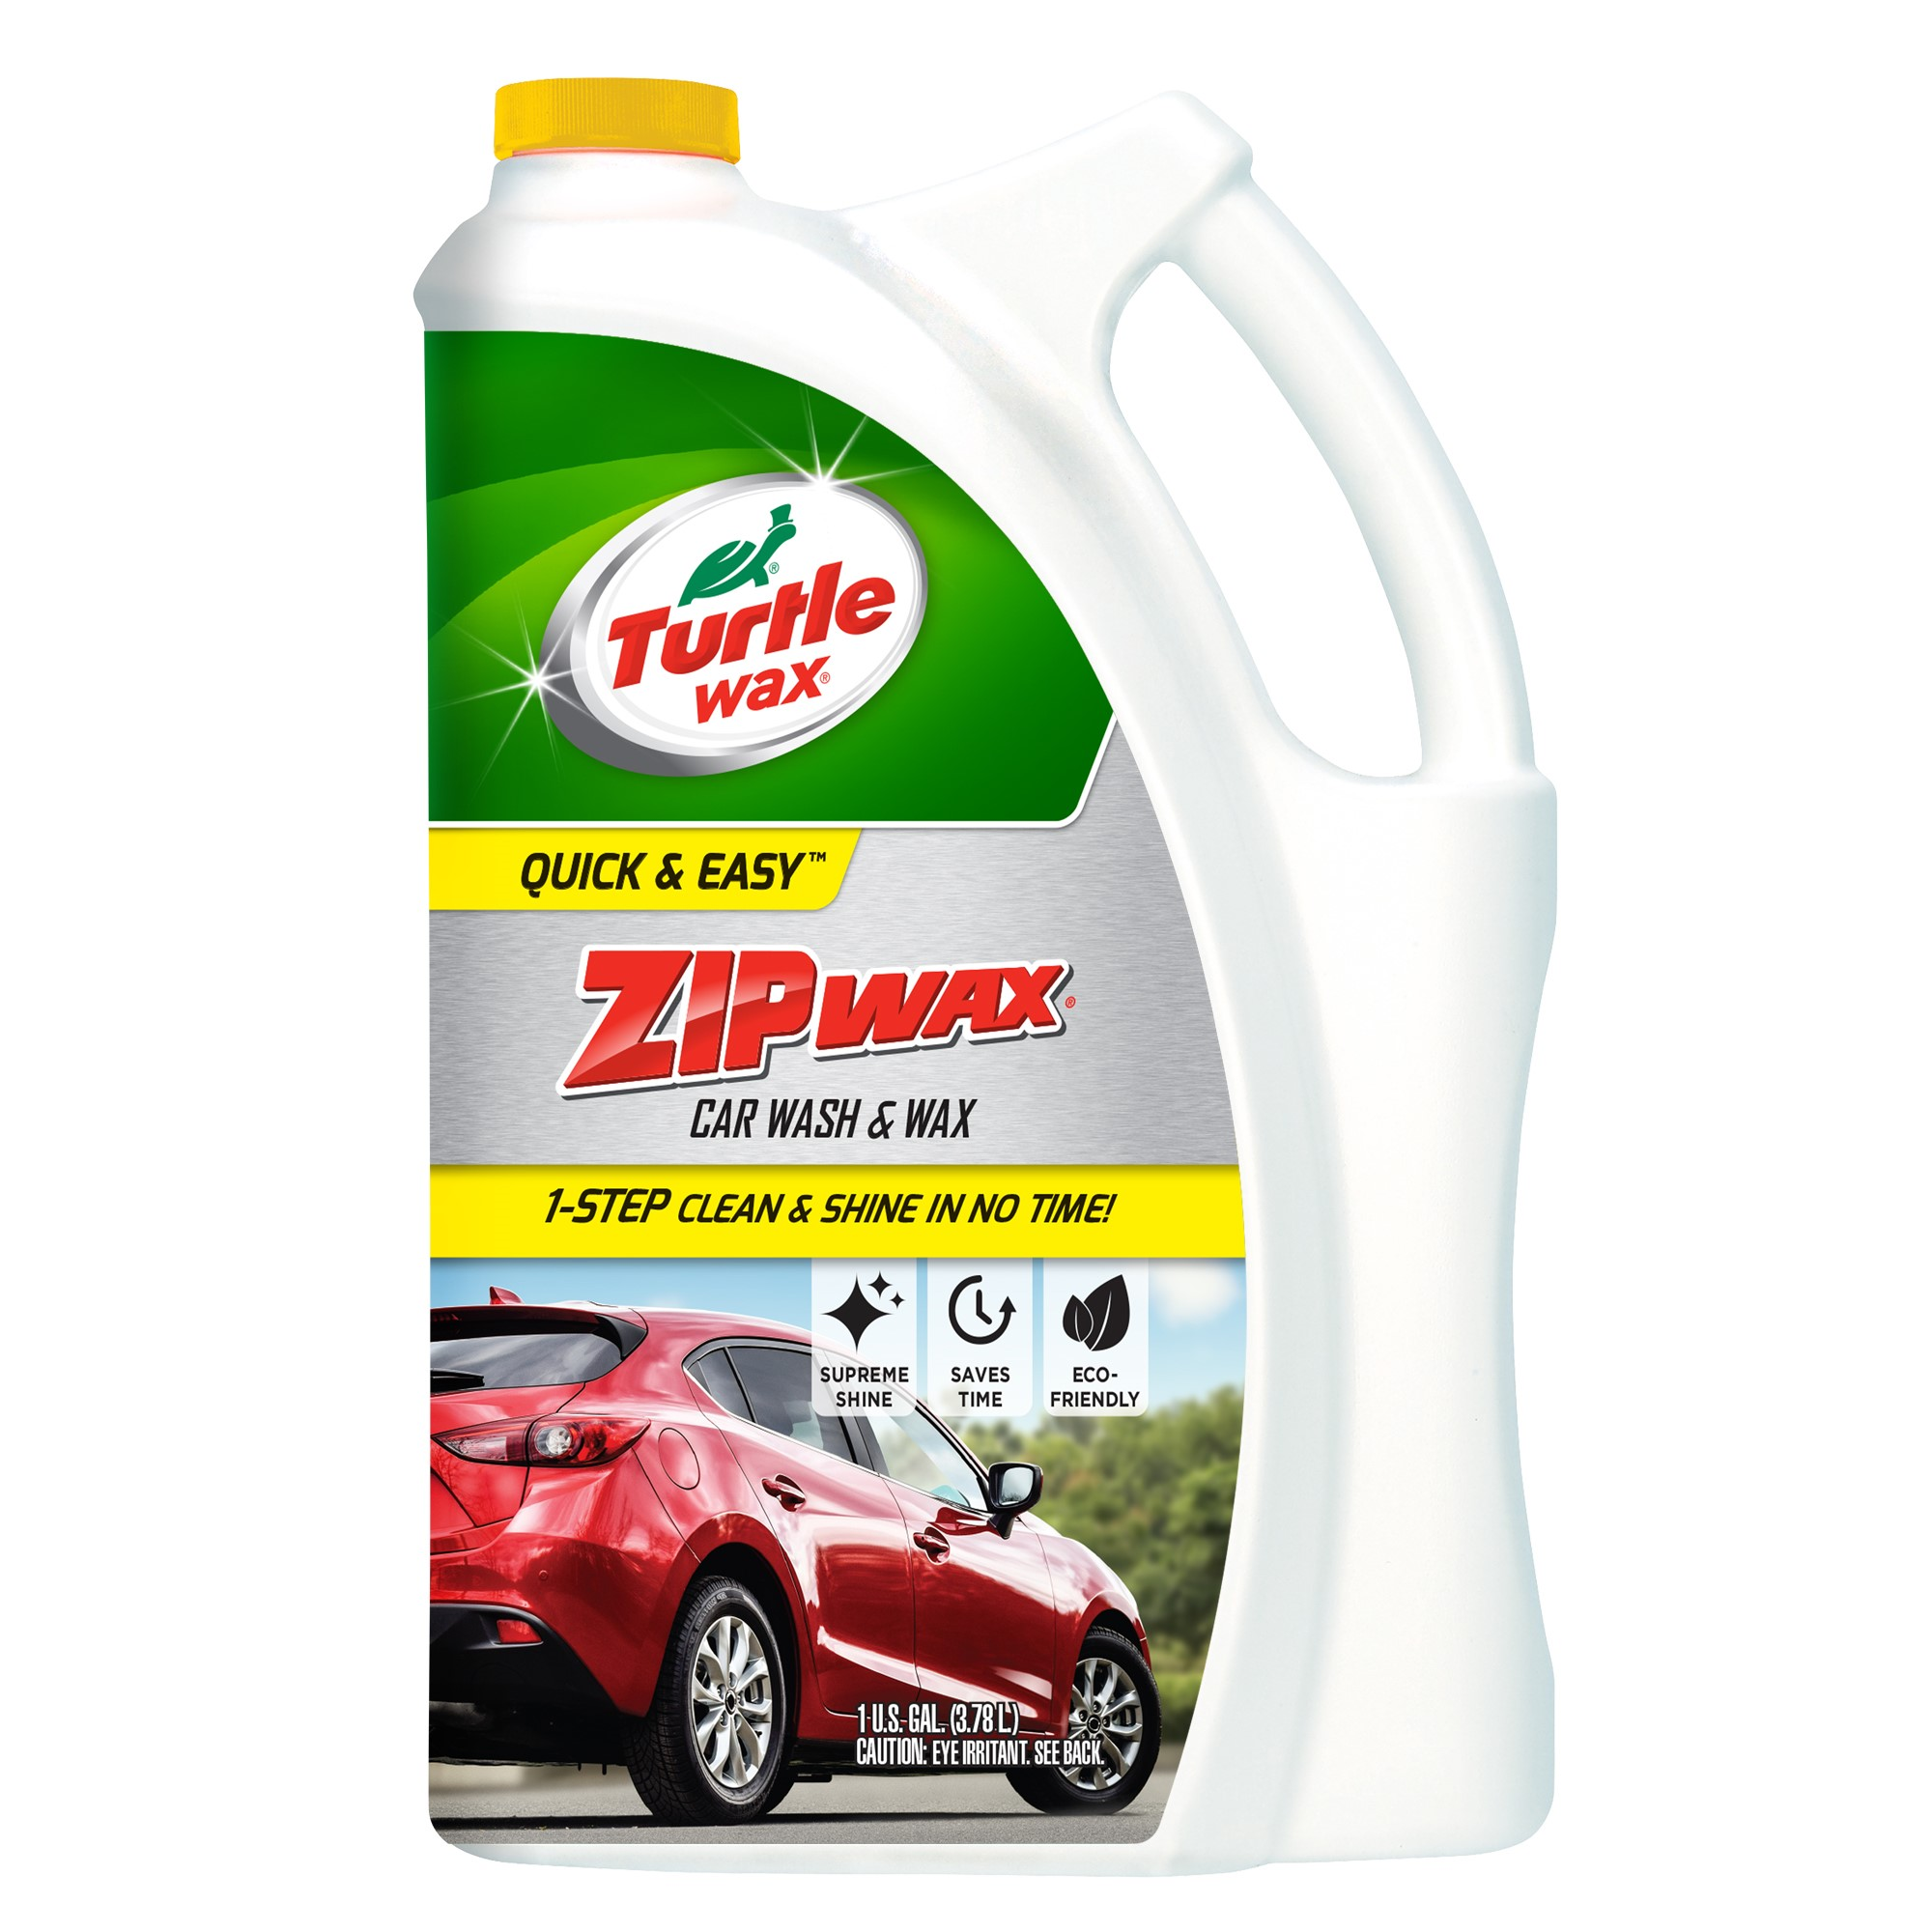 Turtle Wax Zip Wax Car Wash